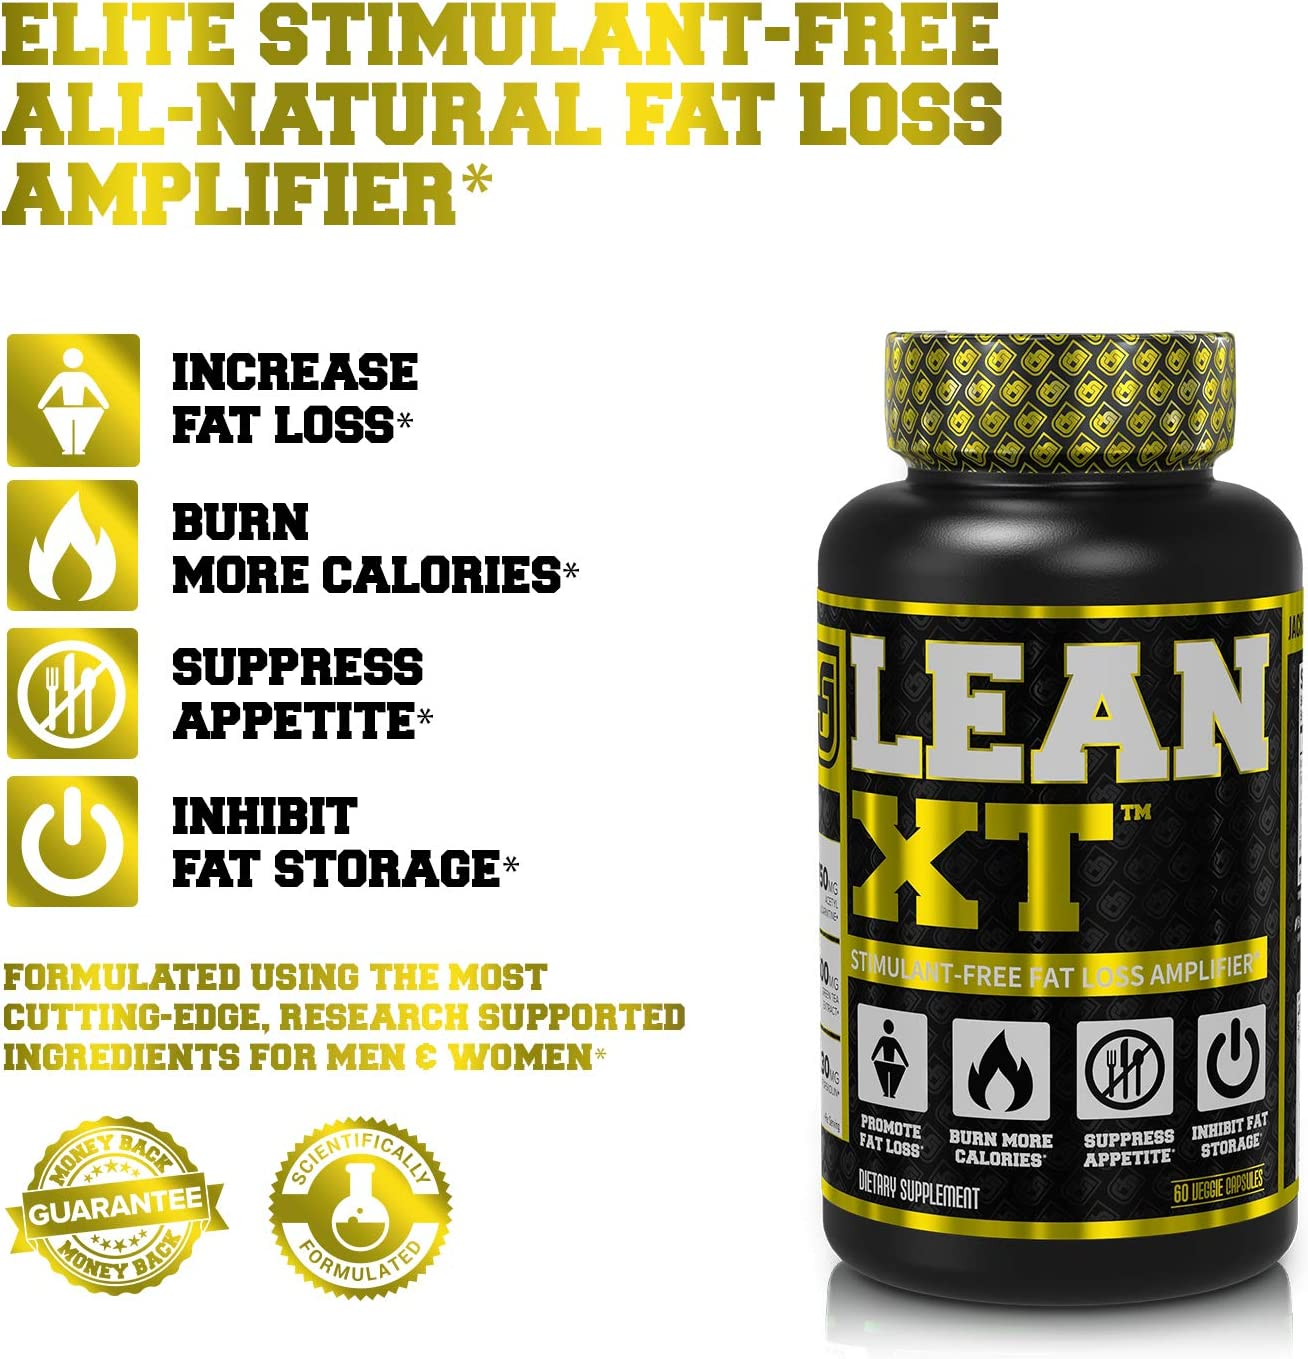 Lean-XT Non Stimulant Fat Burner - Weight Loss Supplement, Appetite Suppressant, Metabolism Booster with Acetyl L-Carnitine, Green Tea Extract, Forskolin - 60 Natural Diet Pills